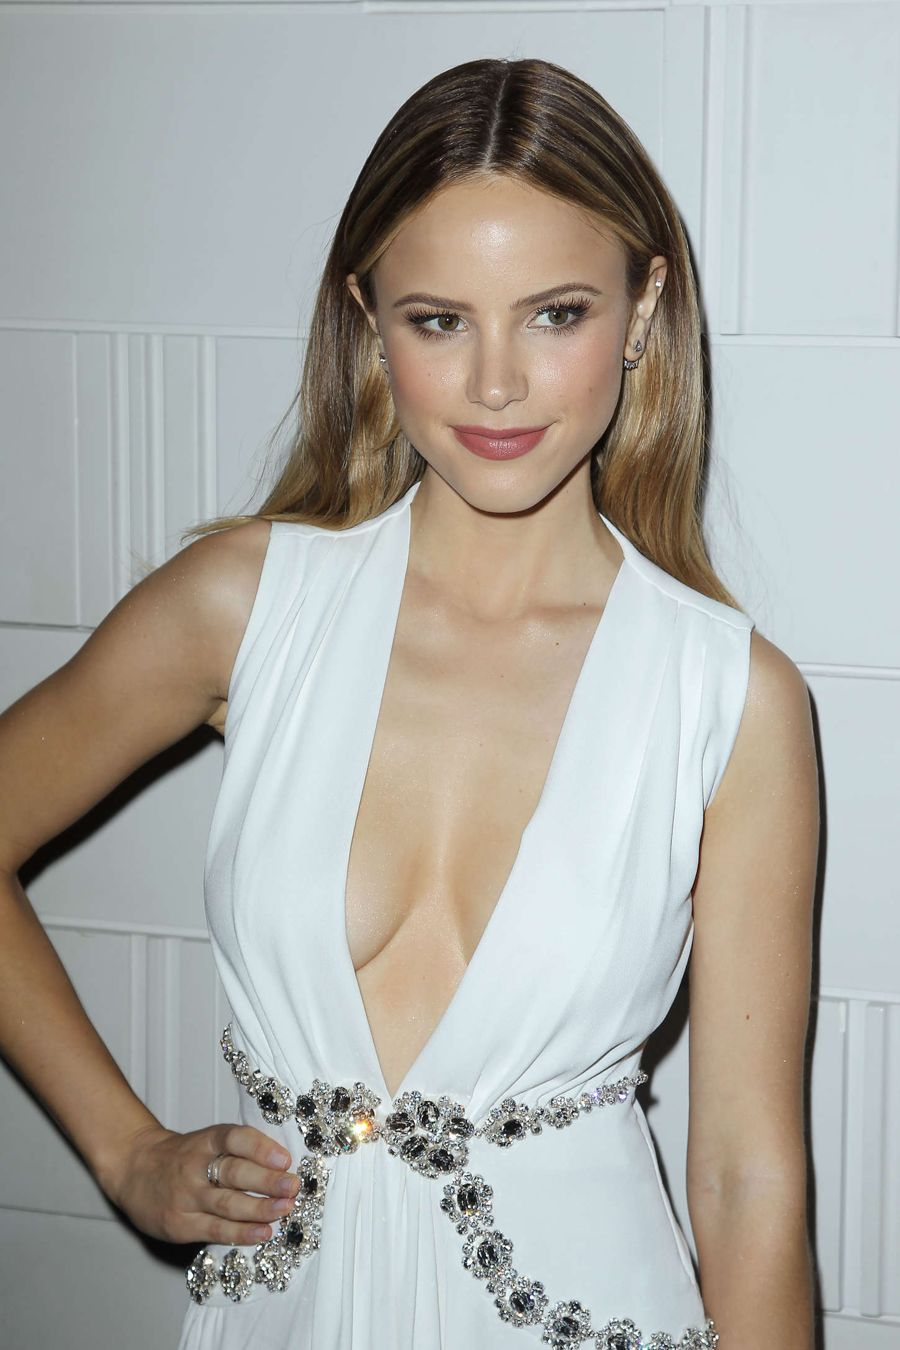 Halston Sage - 'Paper Towns' After Party in NYC